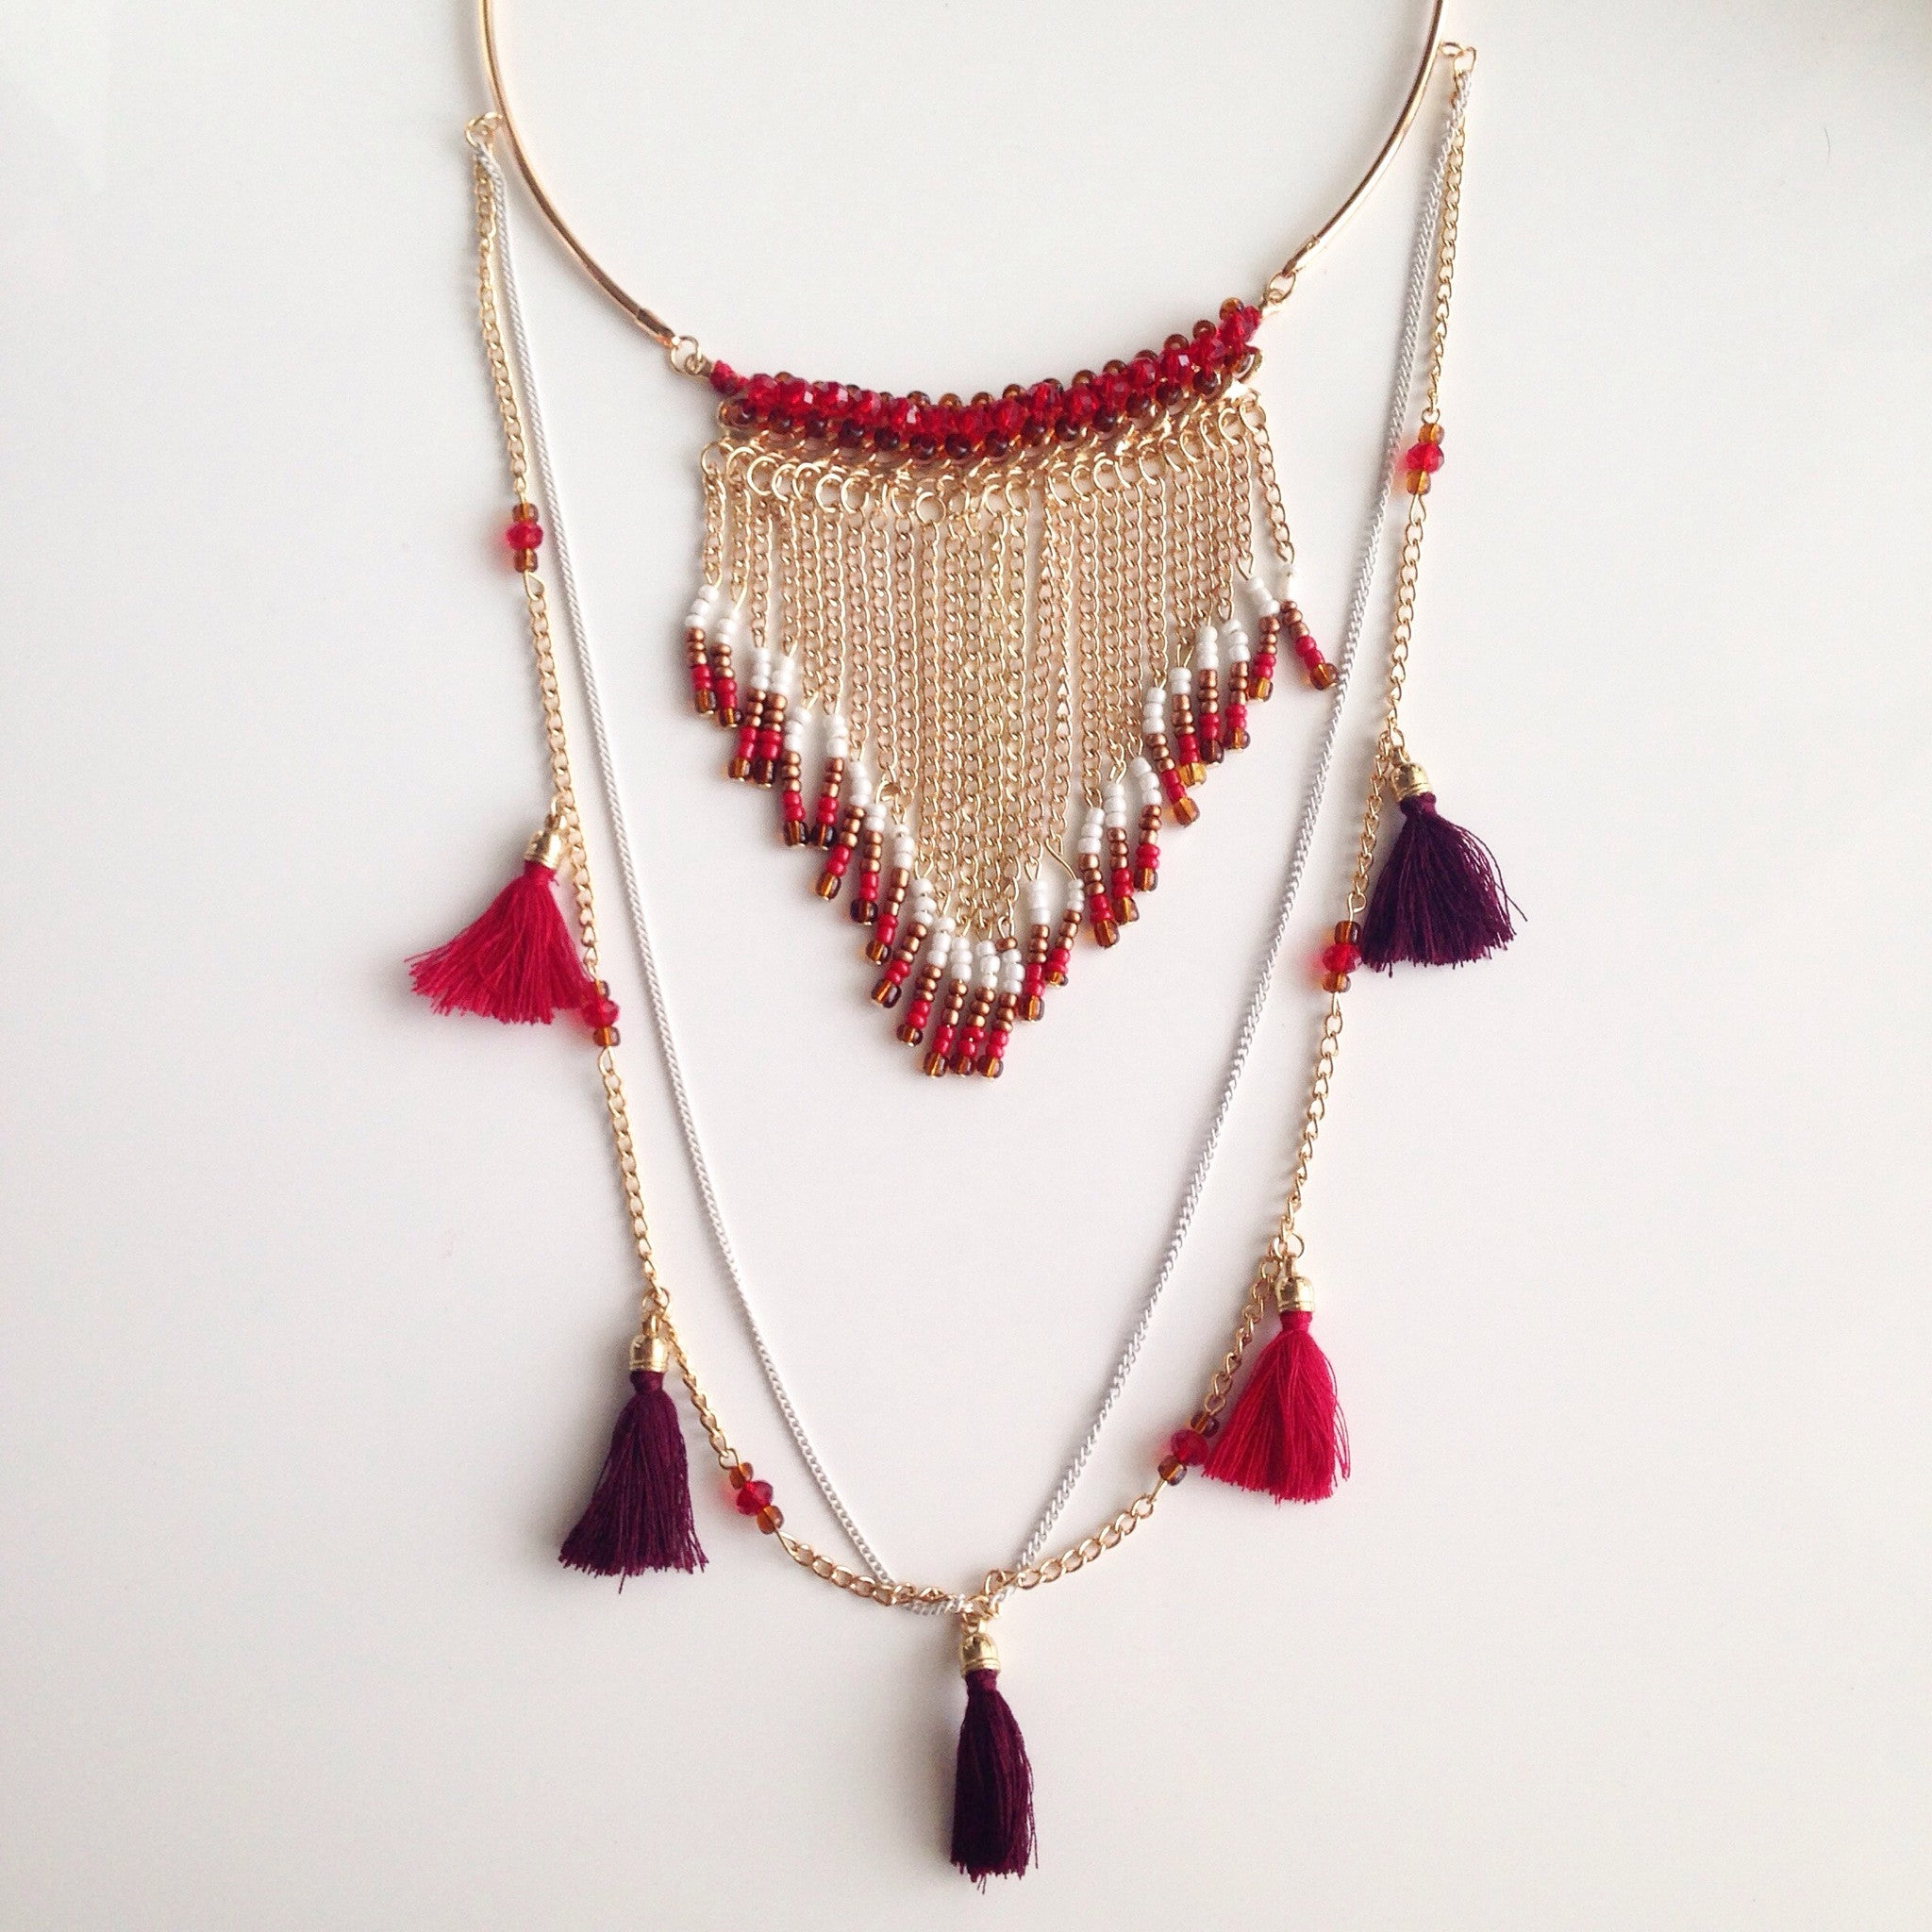 RED FRINGE NECKLACE - Flauntandfun